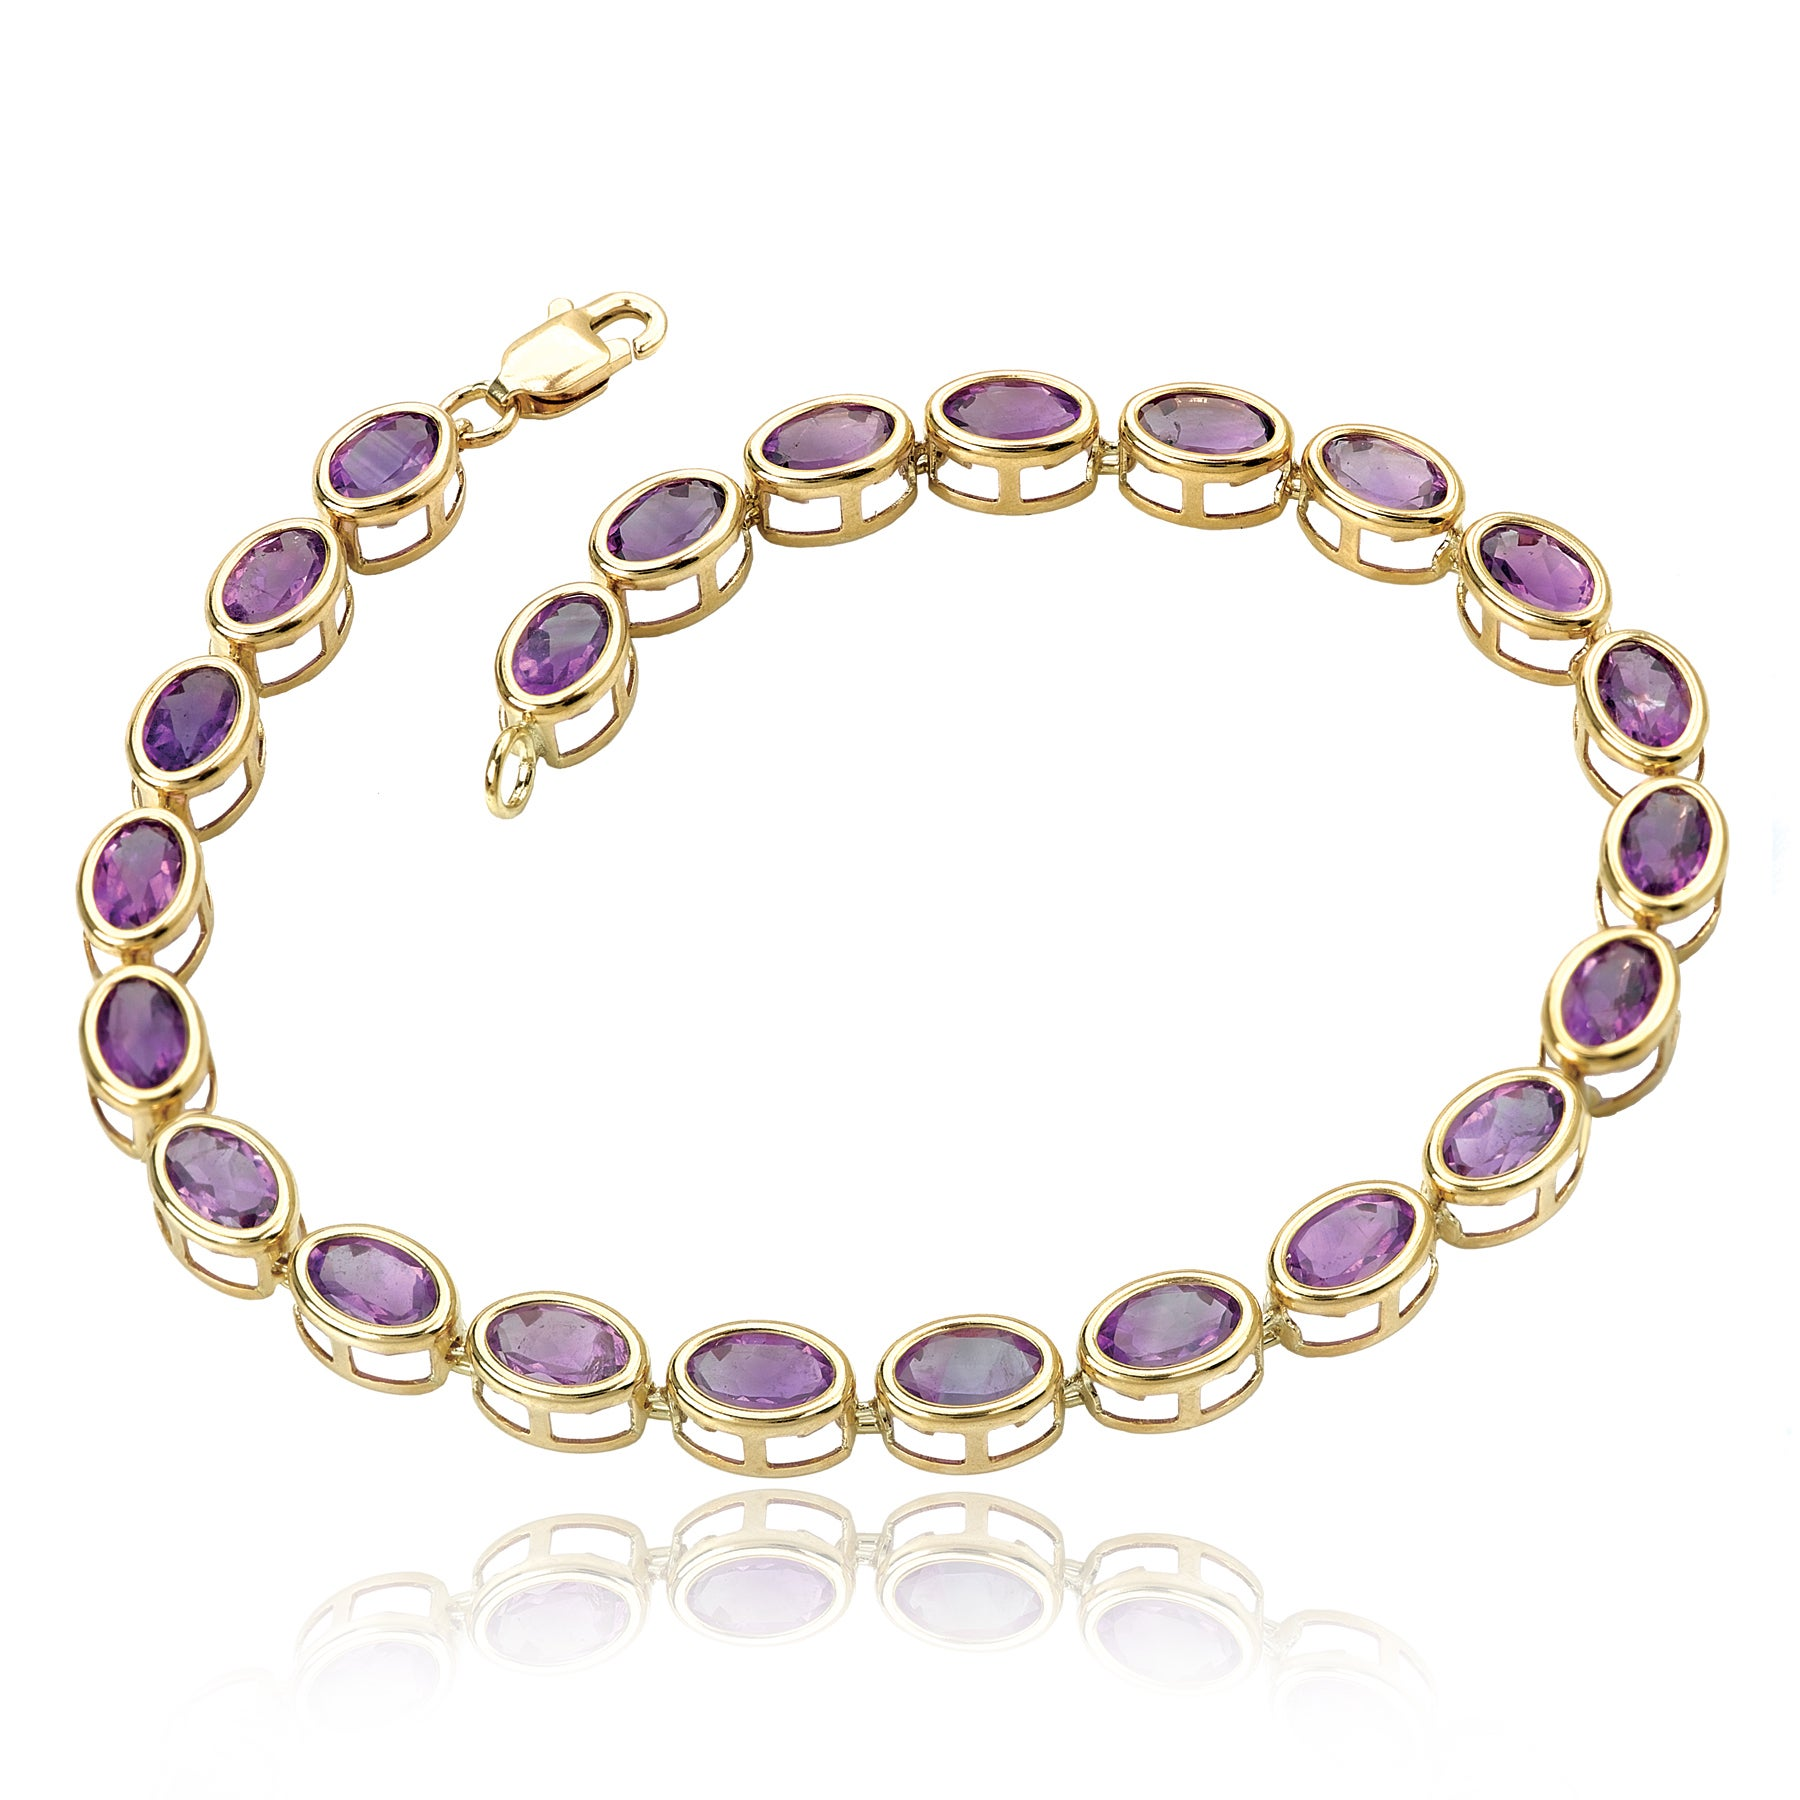 14K White Gold Bracelet With Round Faceted Gemstones 7 Inches